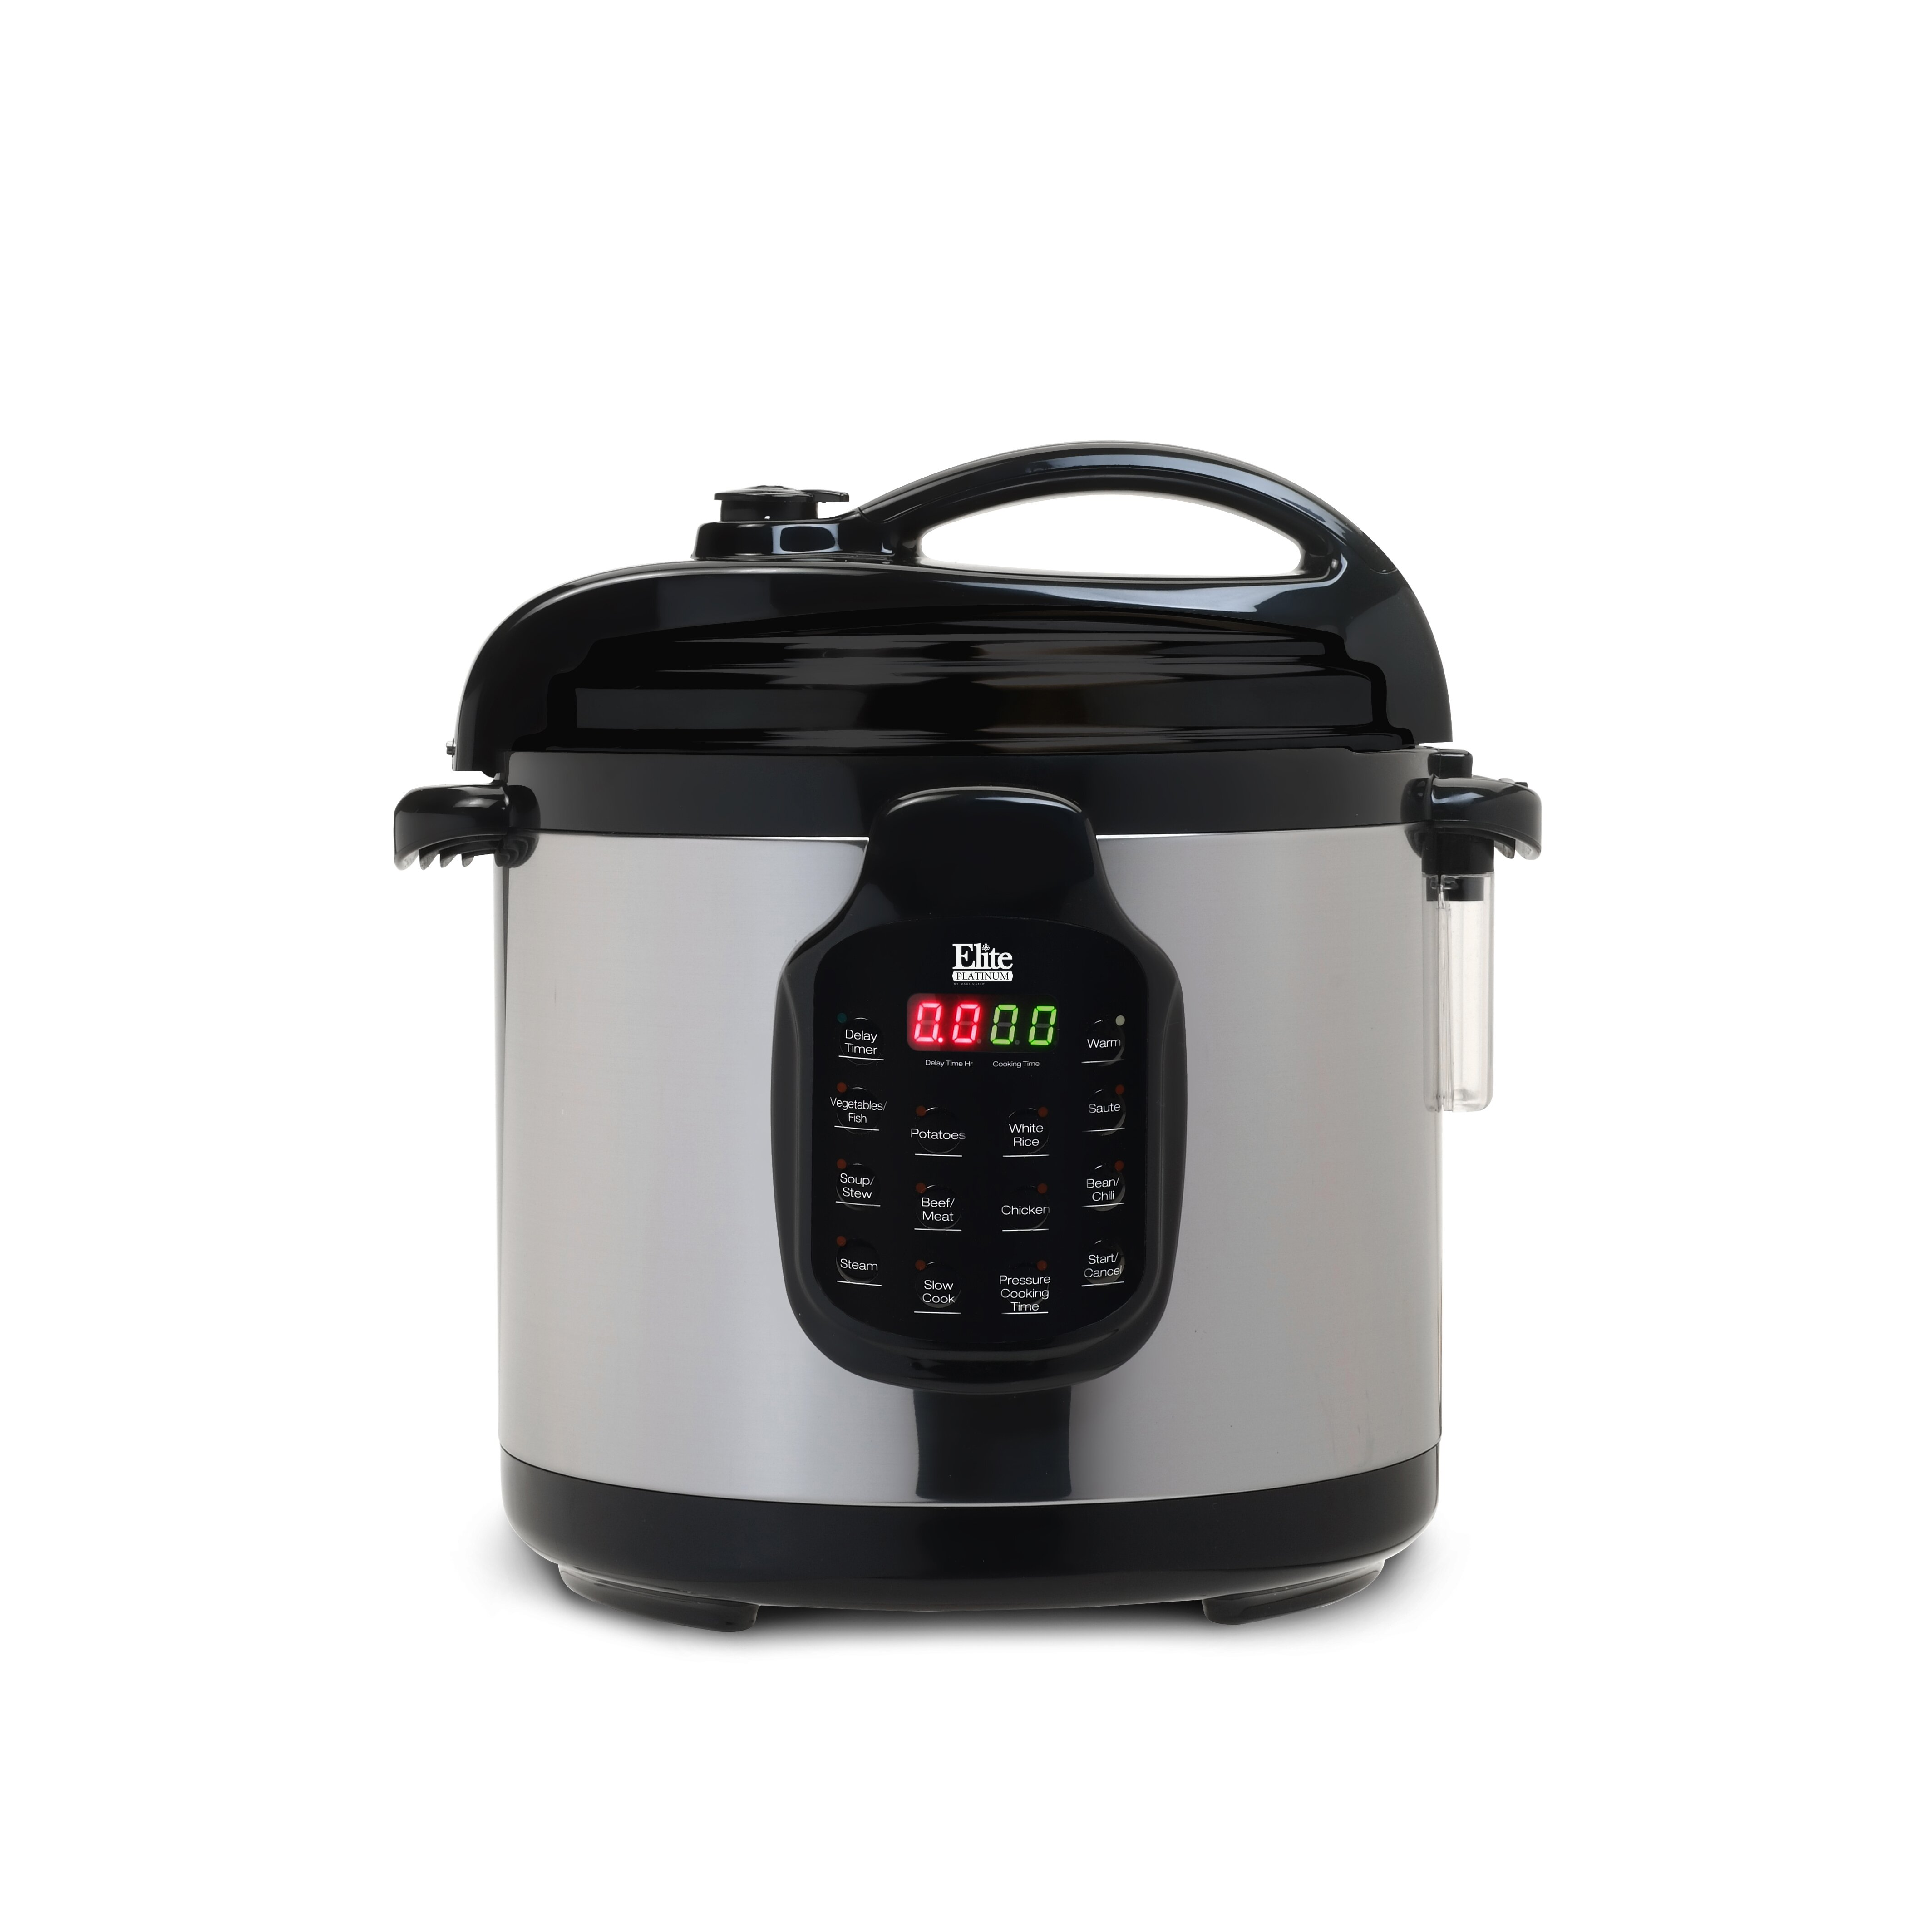 platinum 6 quart electric stainless steel pressure cooker with stainless steel pot wayfair. Black Bedroom Furniture Sets. Home Design Ideas